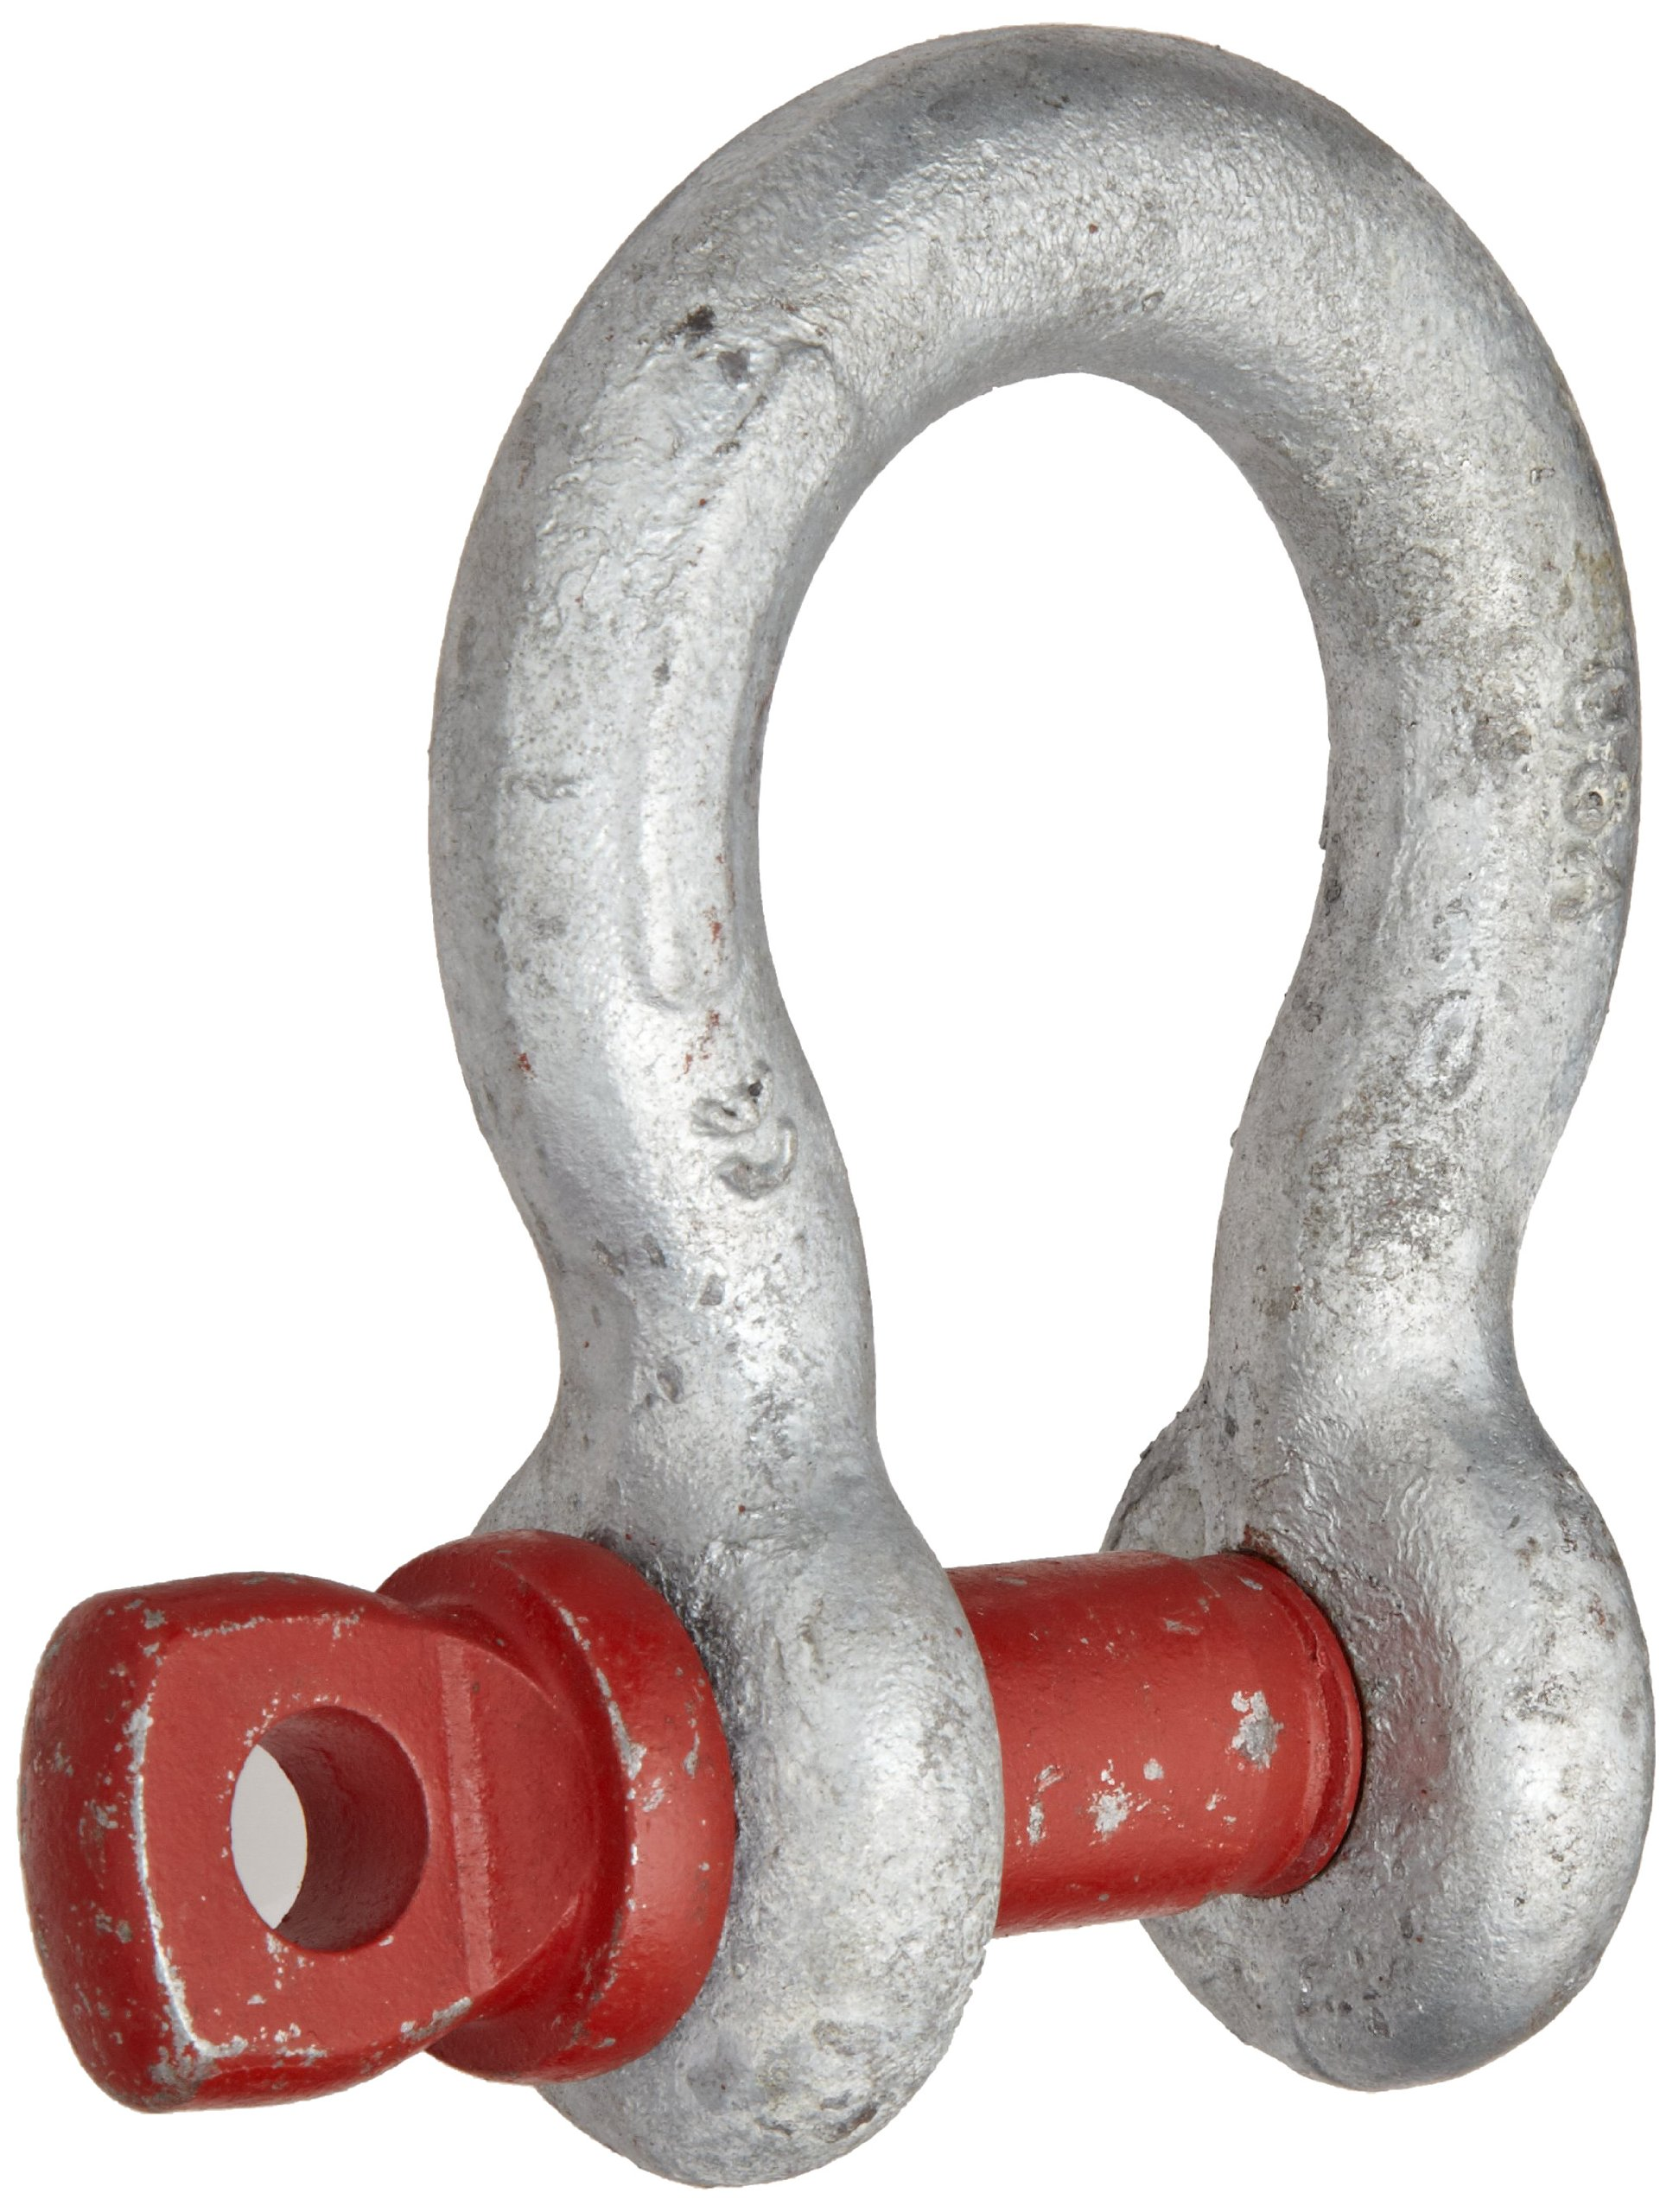 Crosby 1018491 Carbon Steel G-209 Screw Pin Anchor Shackle, Galvanized, 4-3/4 Ton Working Load Limit, 3/4'' Size